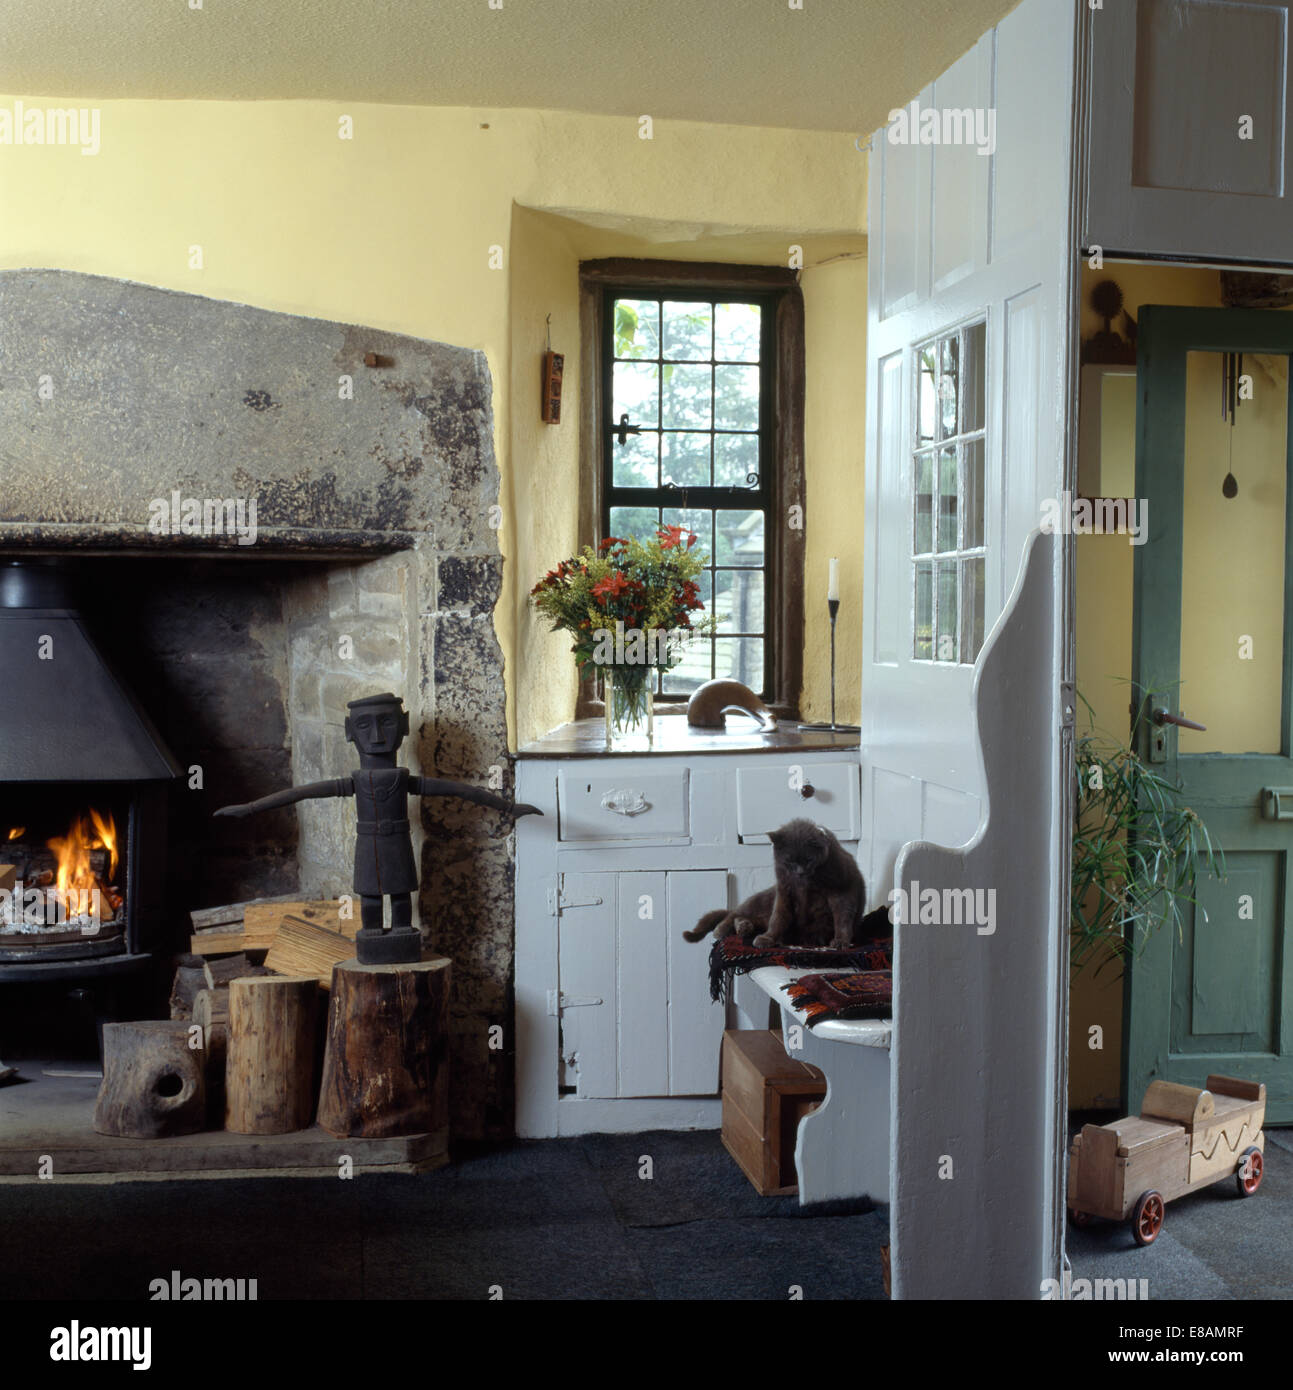 Primitive wooden figure on logs beside wood burning stove in cottage living room with cat sitting on painted seat - Stock Image